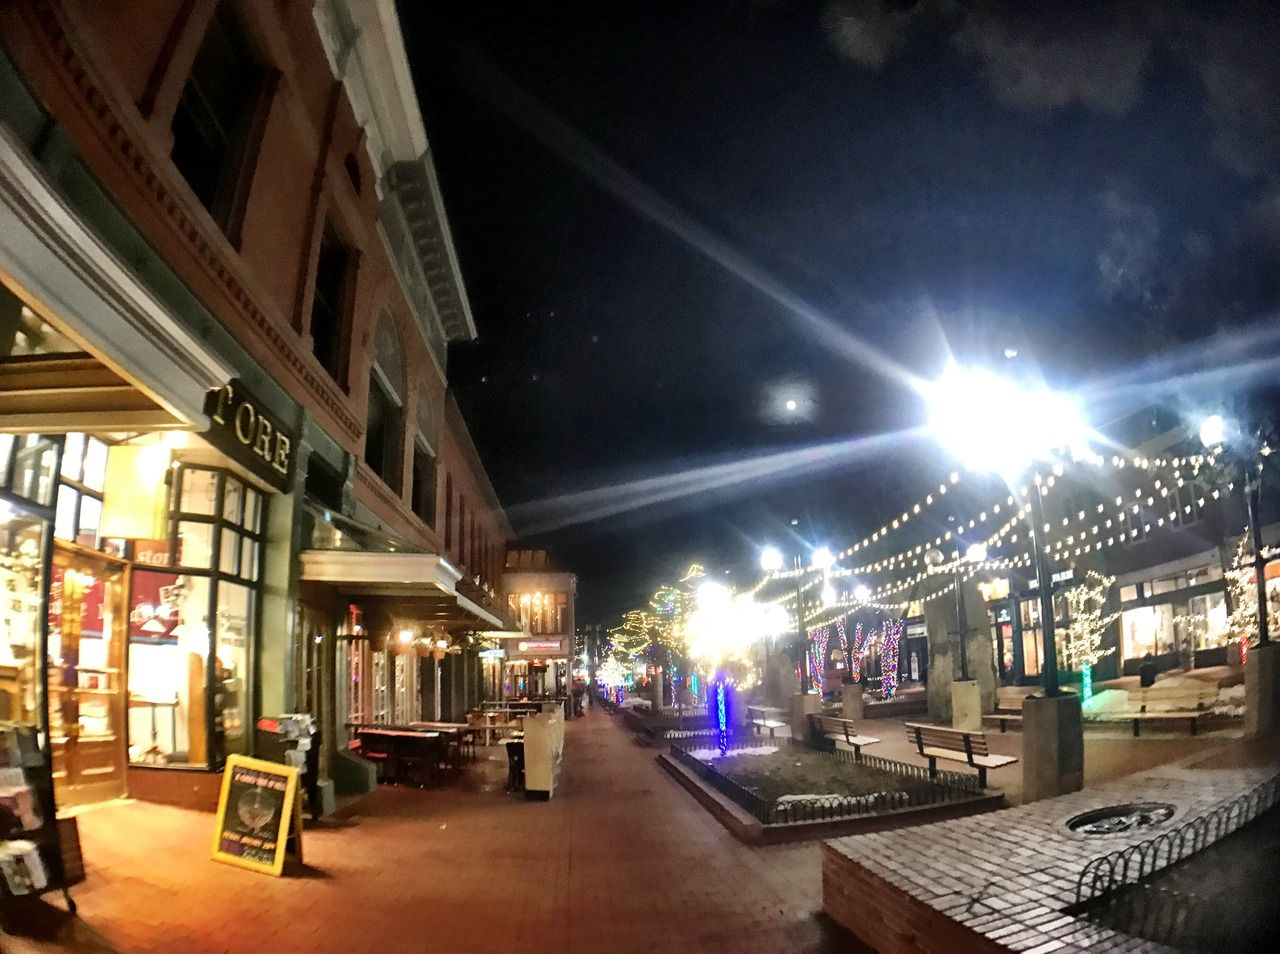 We can't wait to try one (okay maybe two) of these tonight...  Boulder's Late-Night Food Scene https://travelboulder.com/boulders-late-night-food-scene/?utm_campaign=coschedule&utm_source=pinterest&utm_medium=Travel%20Boulder&utm_content=Boulder%27s%20Late-Night%20Food%20Scene  Featuring Bramble & Hare, Boulder Baked and The Attic Bar & Bistro Boulder ... just to name just a few.   #travelboulder #bouldercolorado